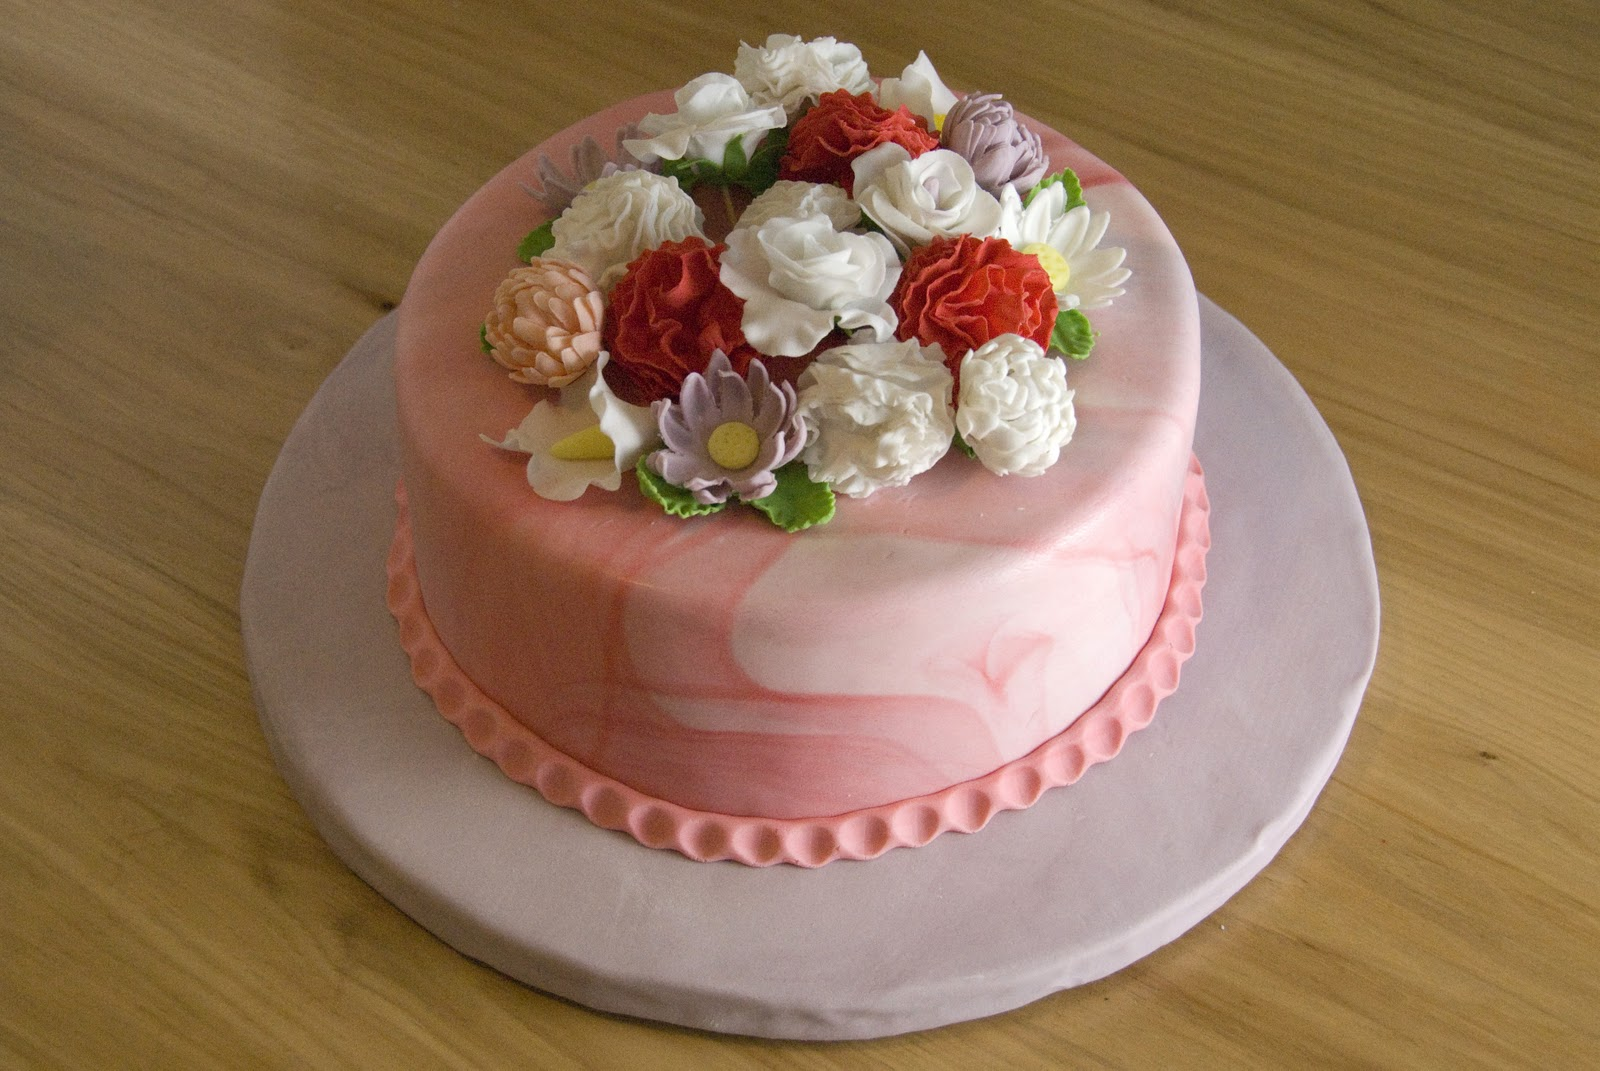 Pictures Of Decorated Cakes With Flowers